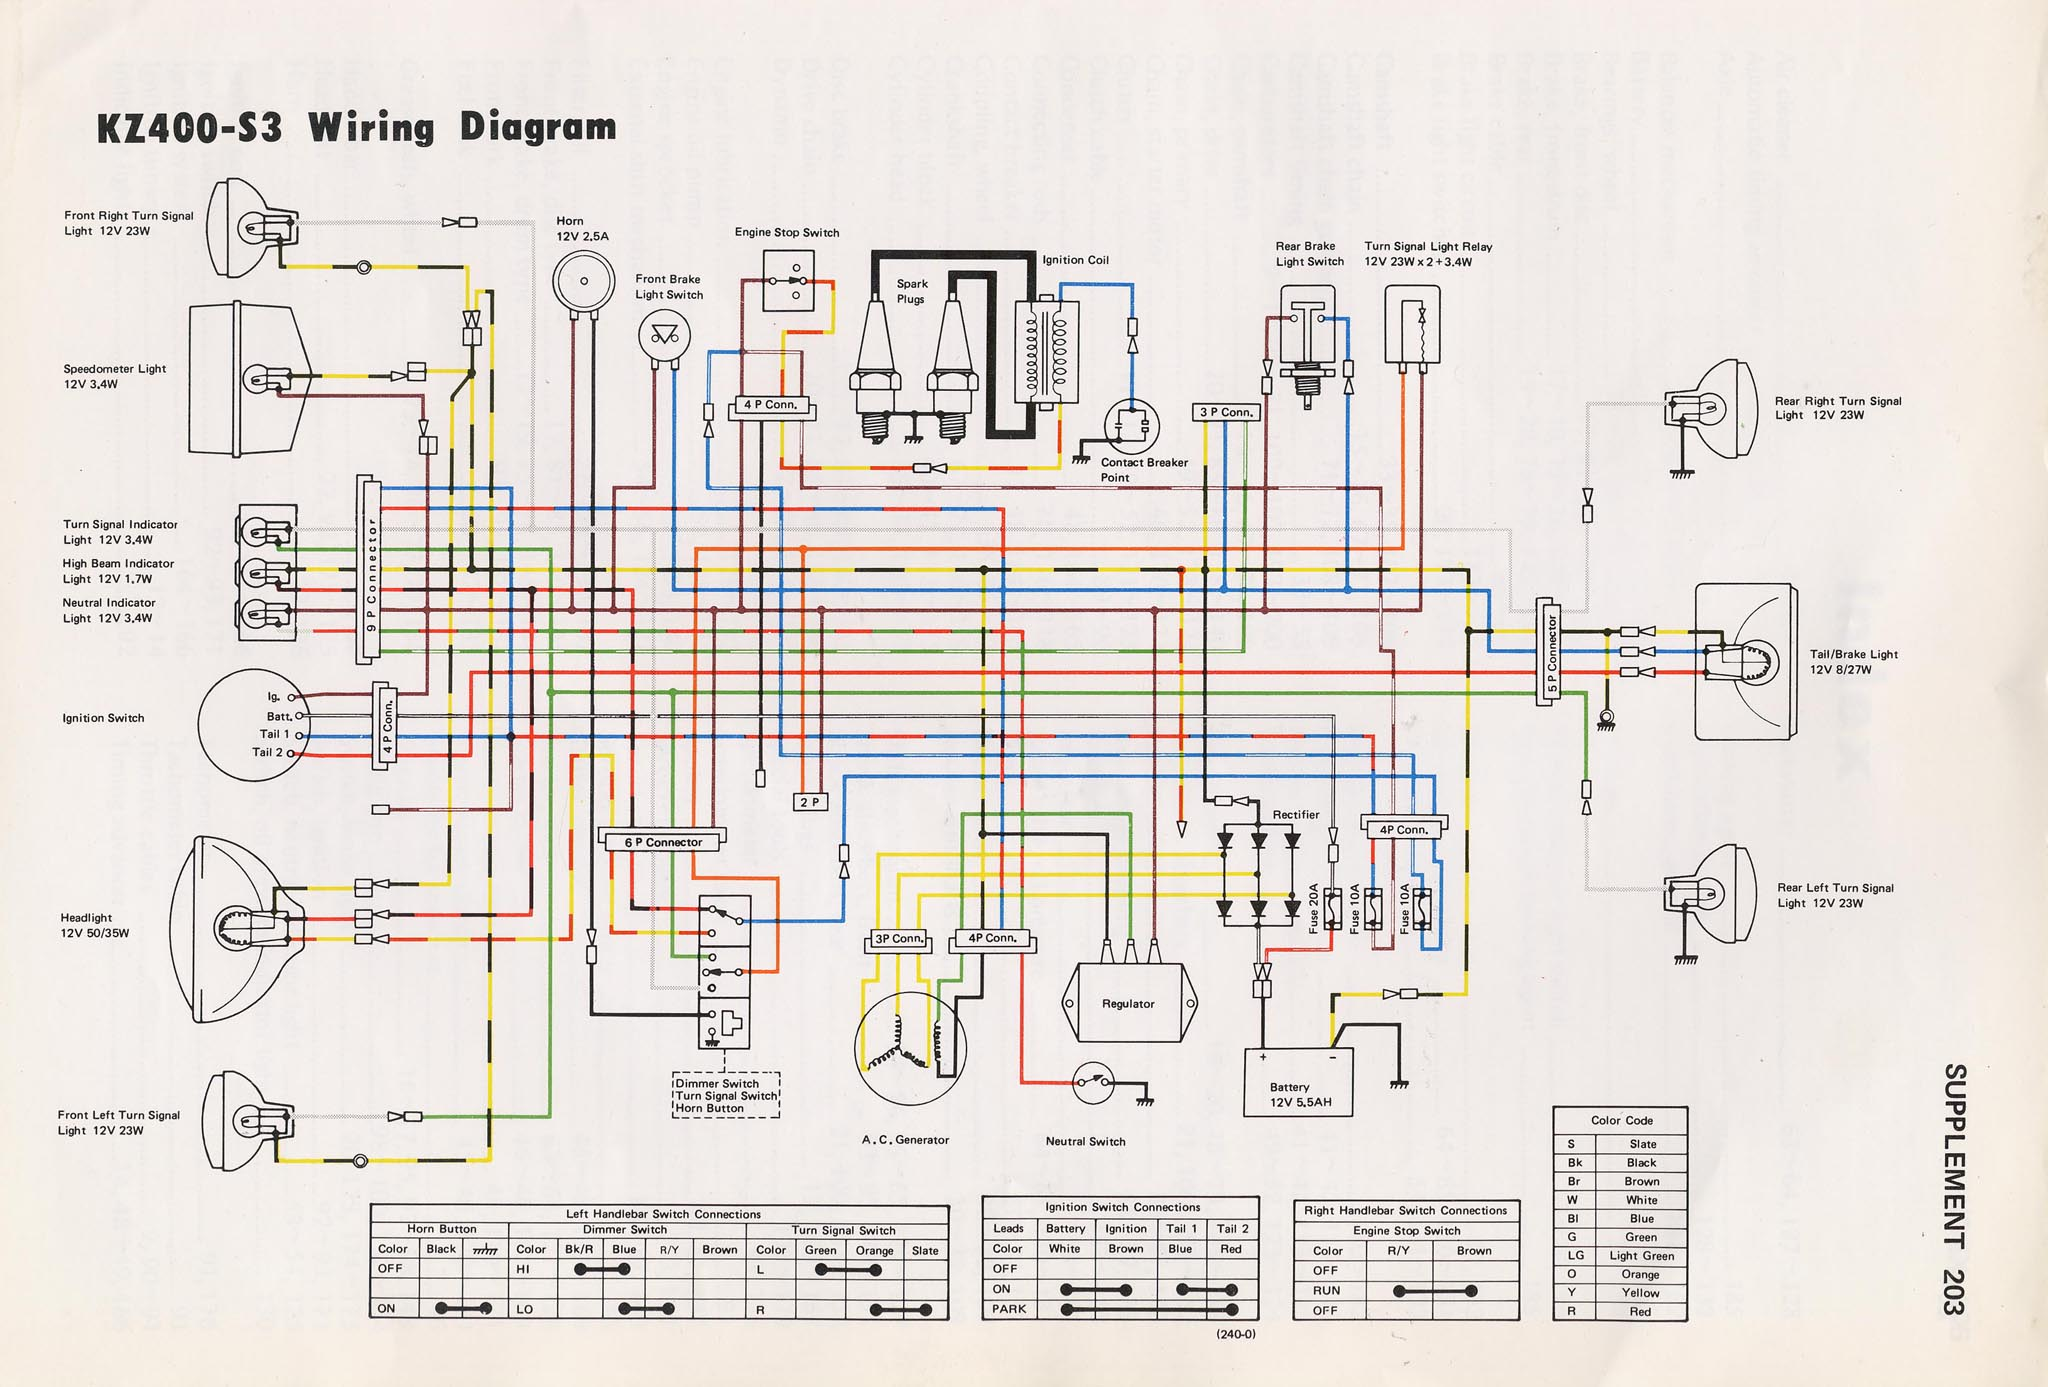 Kz440 Wiring Diagram | Wiring Schematic Diagram on yfz450r wiring diagram, atv wiring diagram, xr250r wiring diagram, 300ex wiring diagram, crf450r wiring diagram, 250x wiring diagram, banshee wiring diagram, crf230l wiring diagram, 400ex wiring diagram, trx250r wiring diagram, rebel wiring diagram, blaster wiring diagram, predator 500 wiring diagram, trx300 wiring diagram, honda wiring diagram, raptor wiring diagram, z400 wiring diagram, foreman wiring diagram, crf250r wiring diagram, kawasaki wiring diagram,